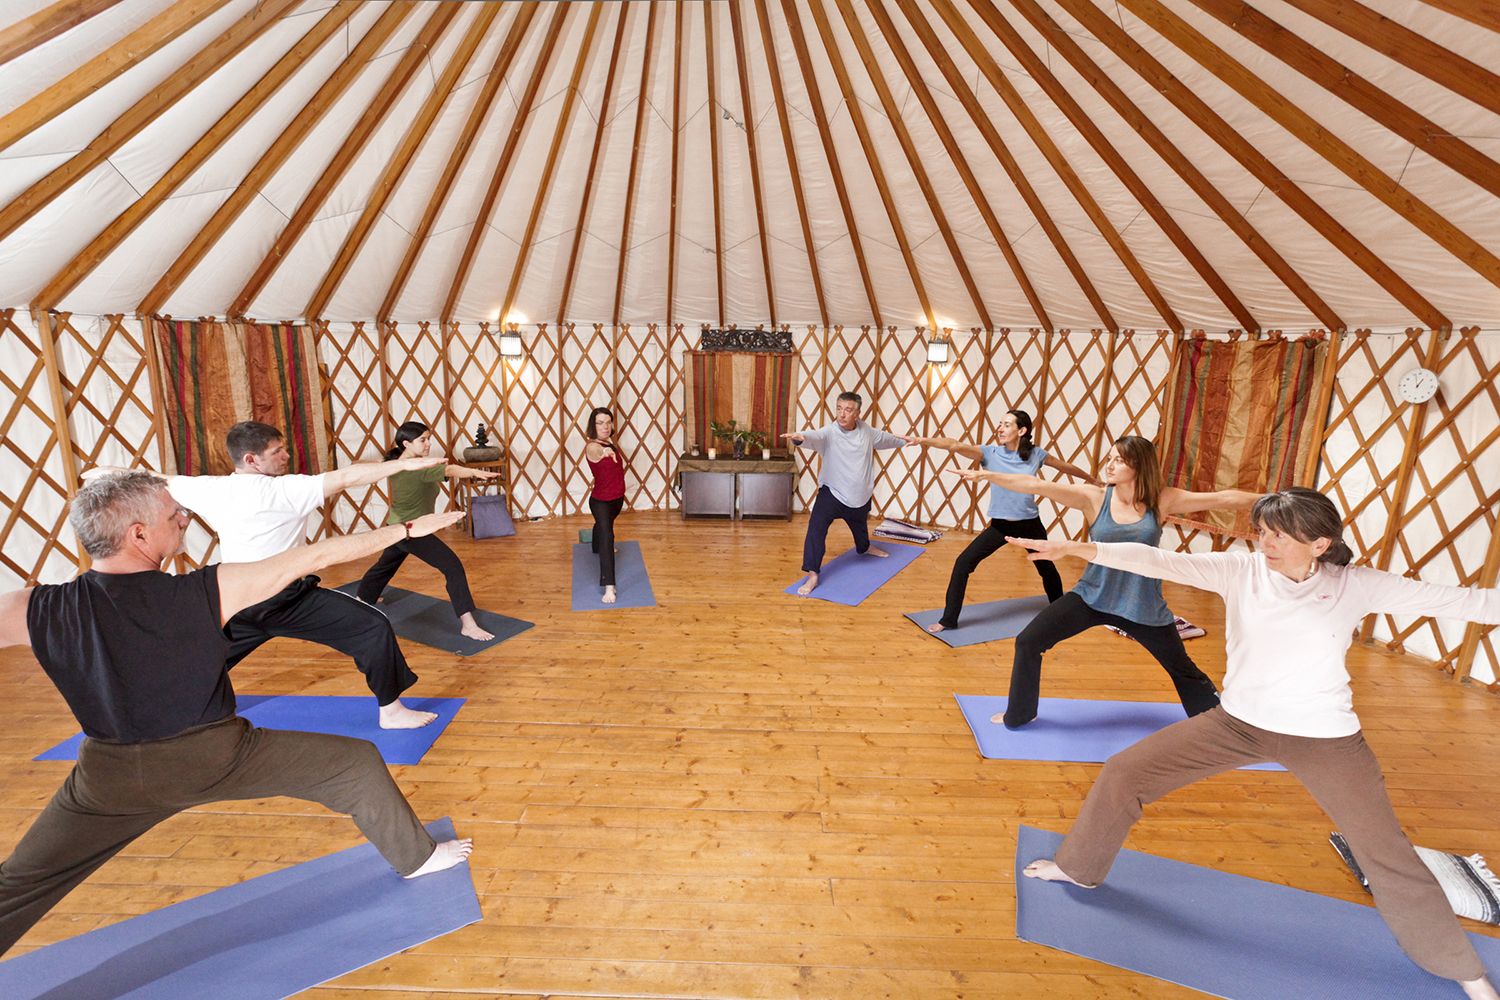 Yoga classes are offered seven days a week for guests practicing at all levels.